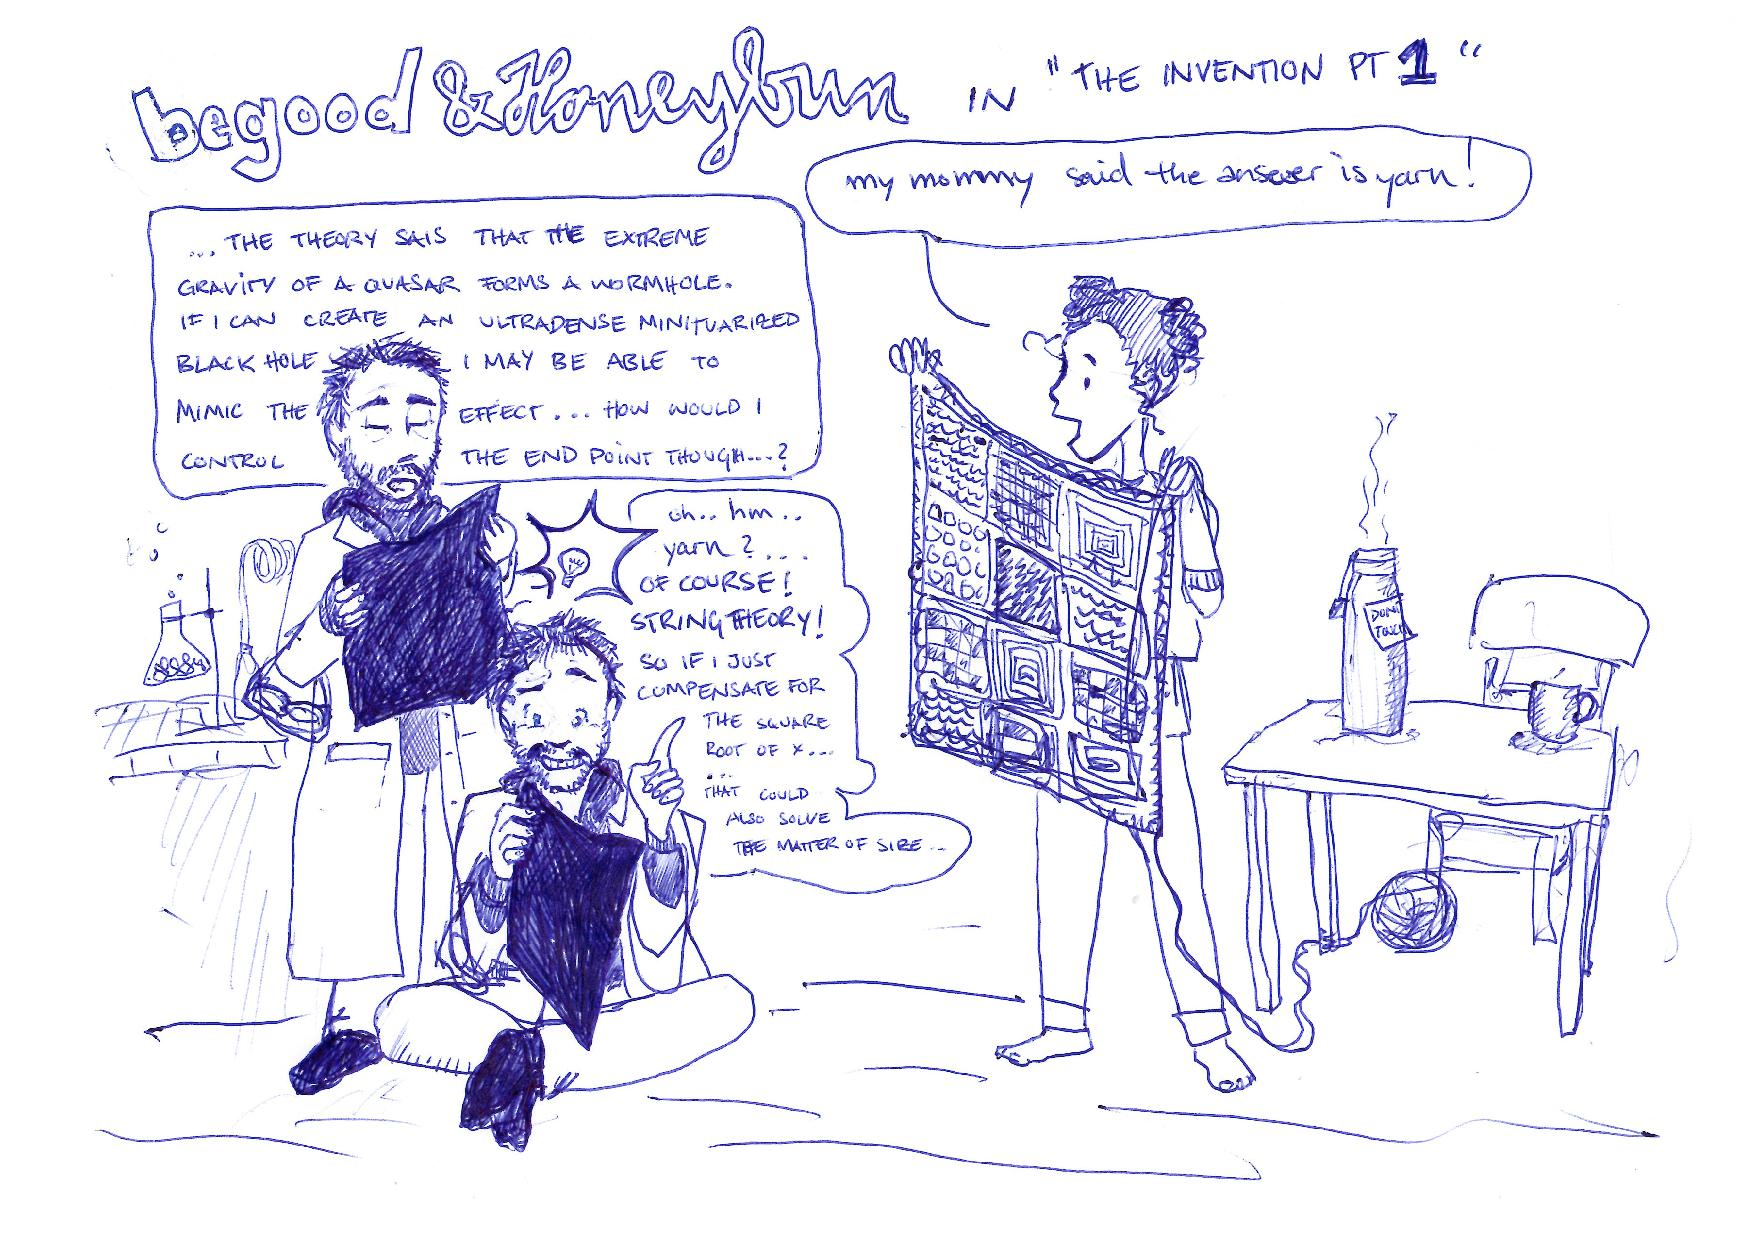 4_the-invention-pt1-page-001.jpg